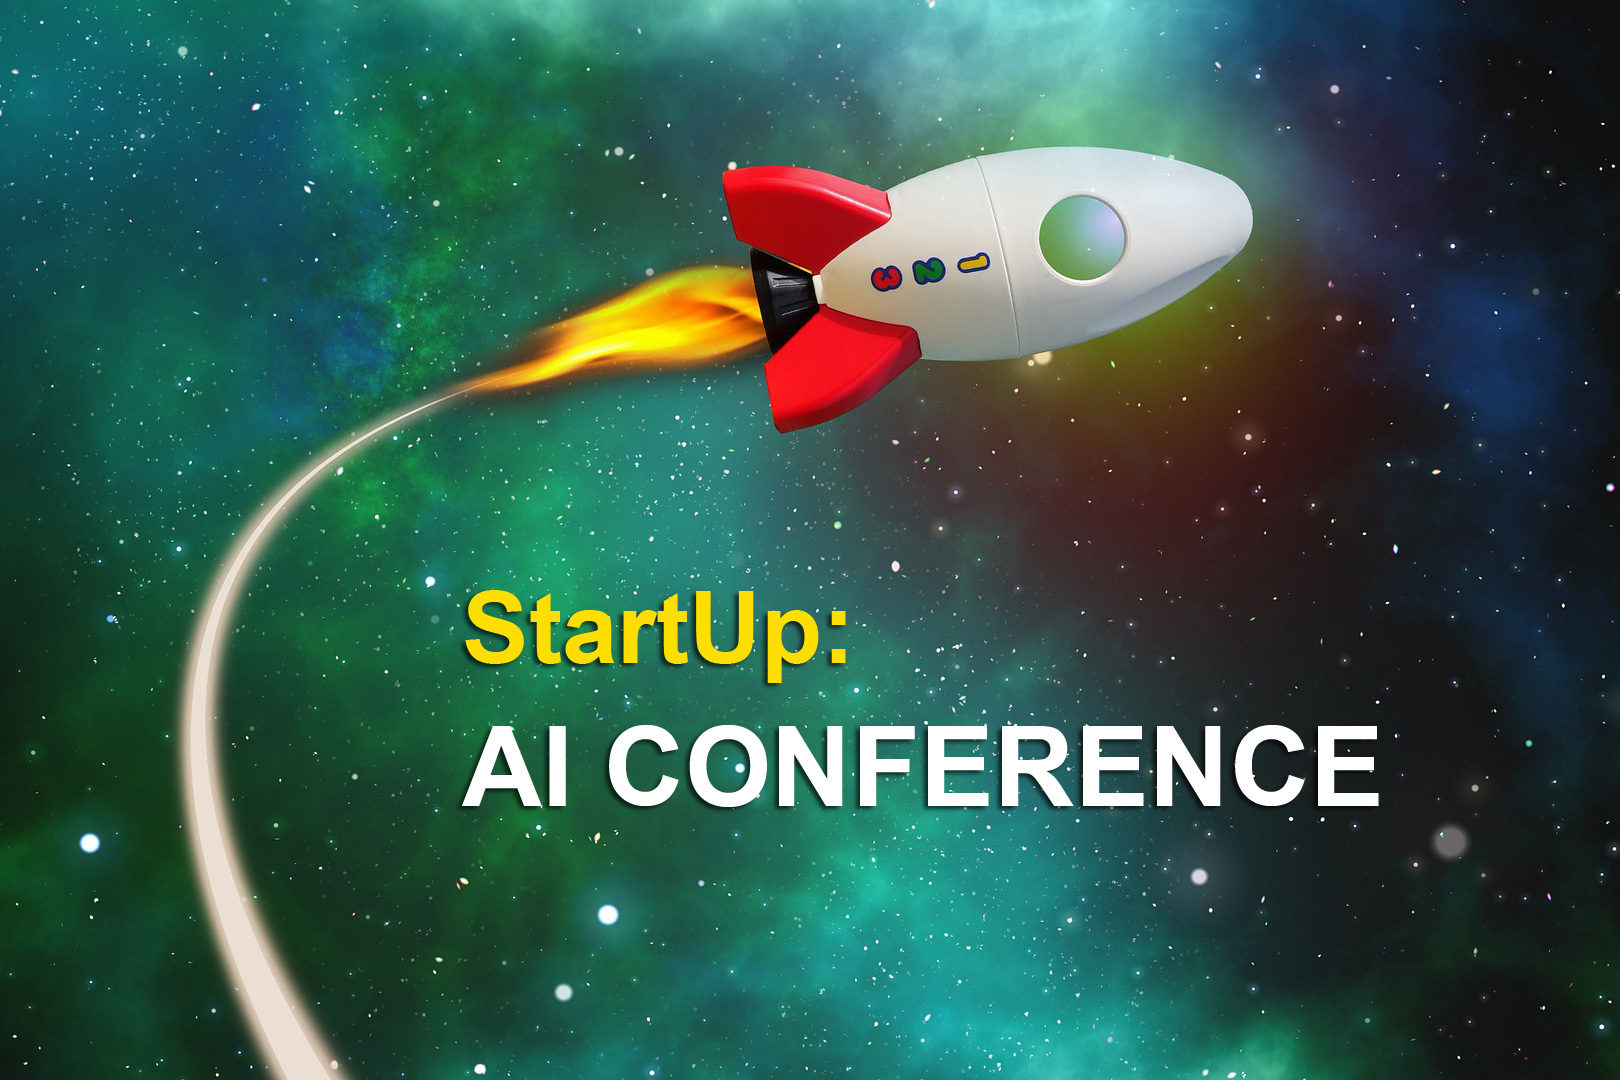 StartUp: AI Conference